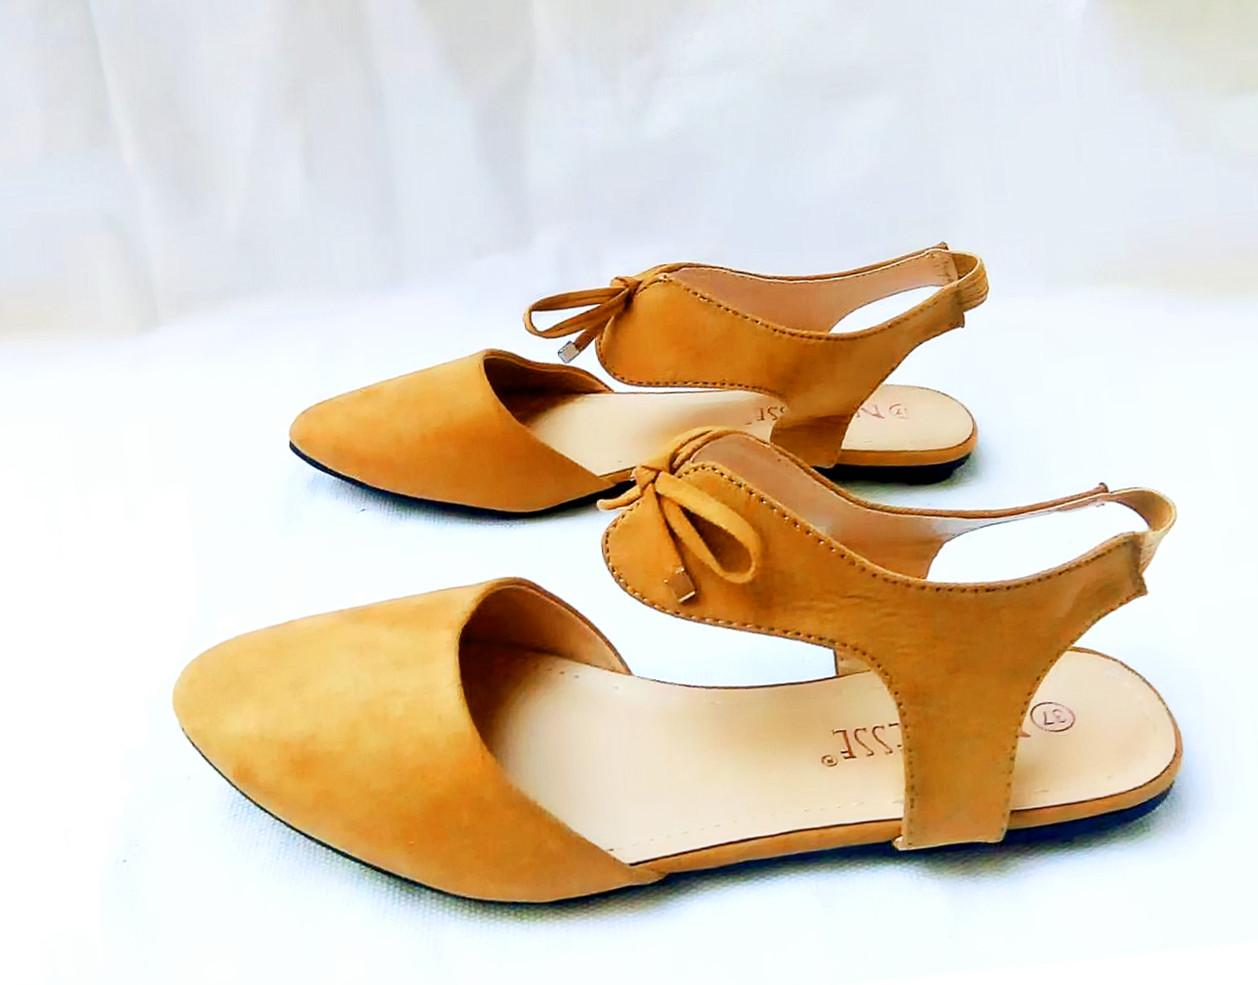 e172bef76925 Hanscp Women s Pointed Toe Ankle Strap Shoes Ballet Flats Spring Casual  Sandals  EB01052